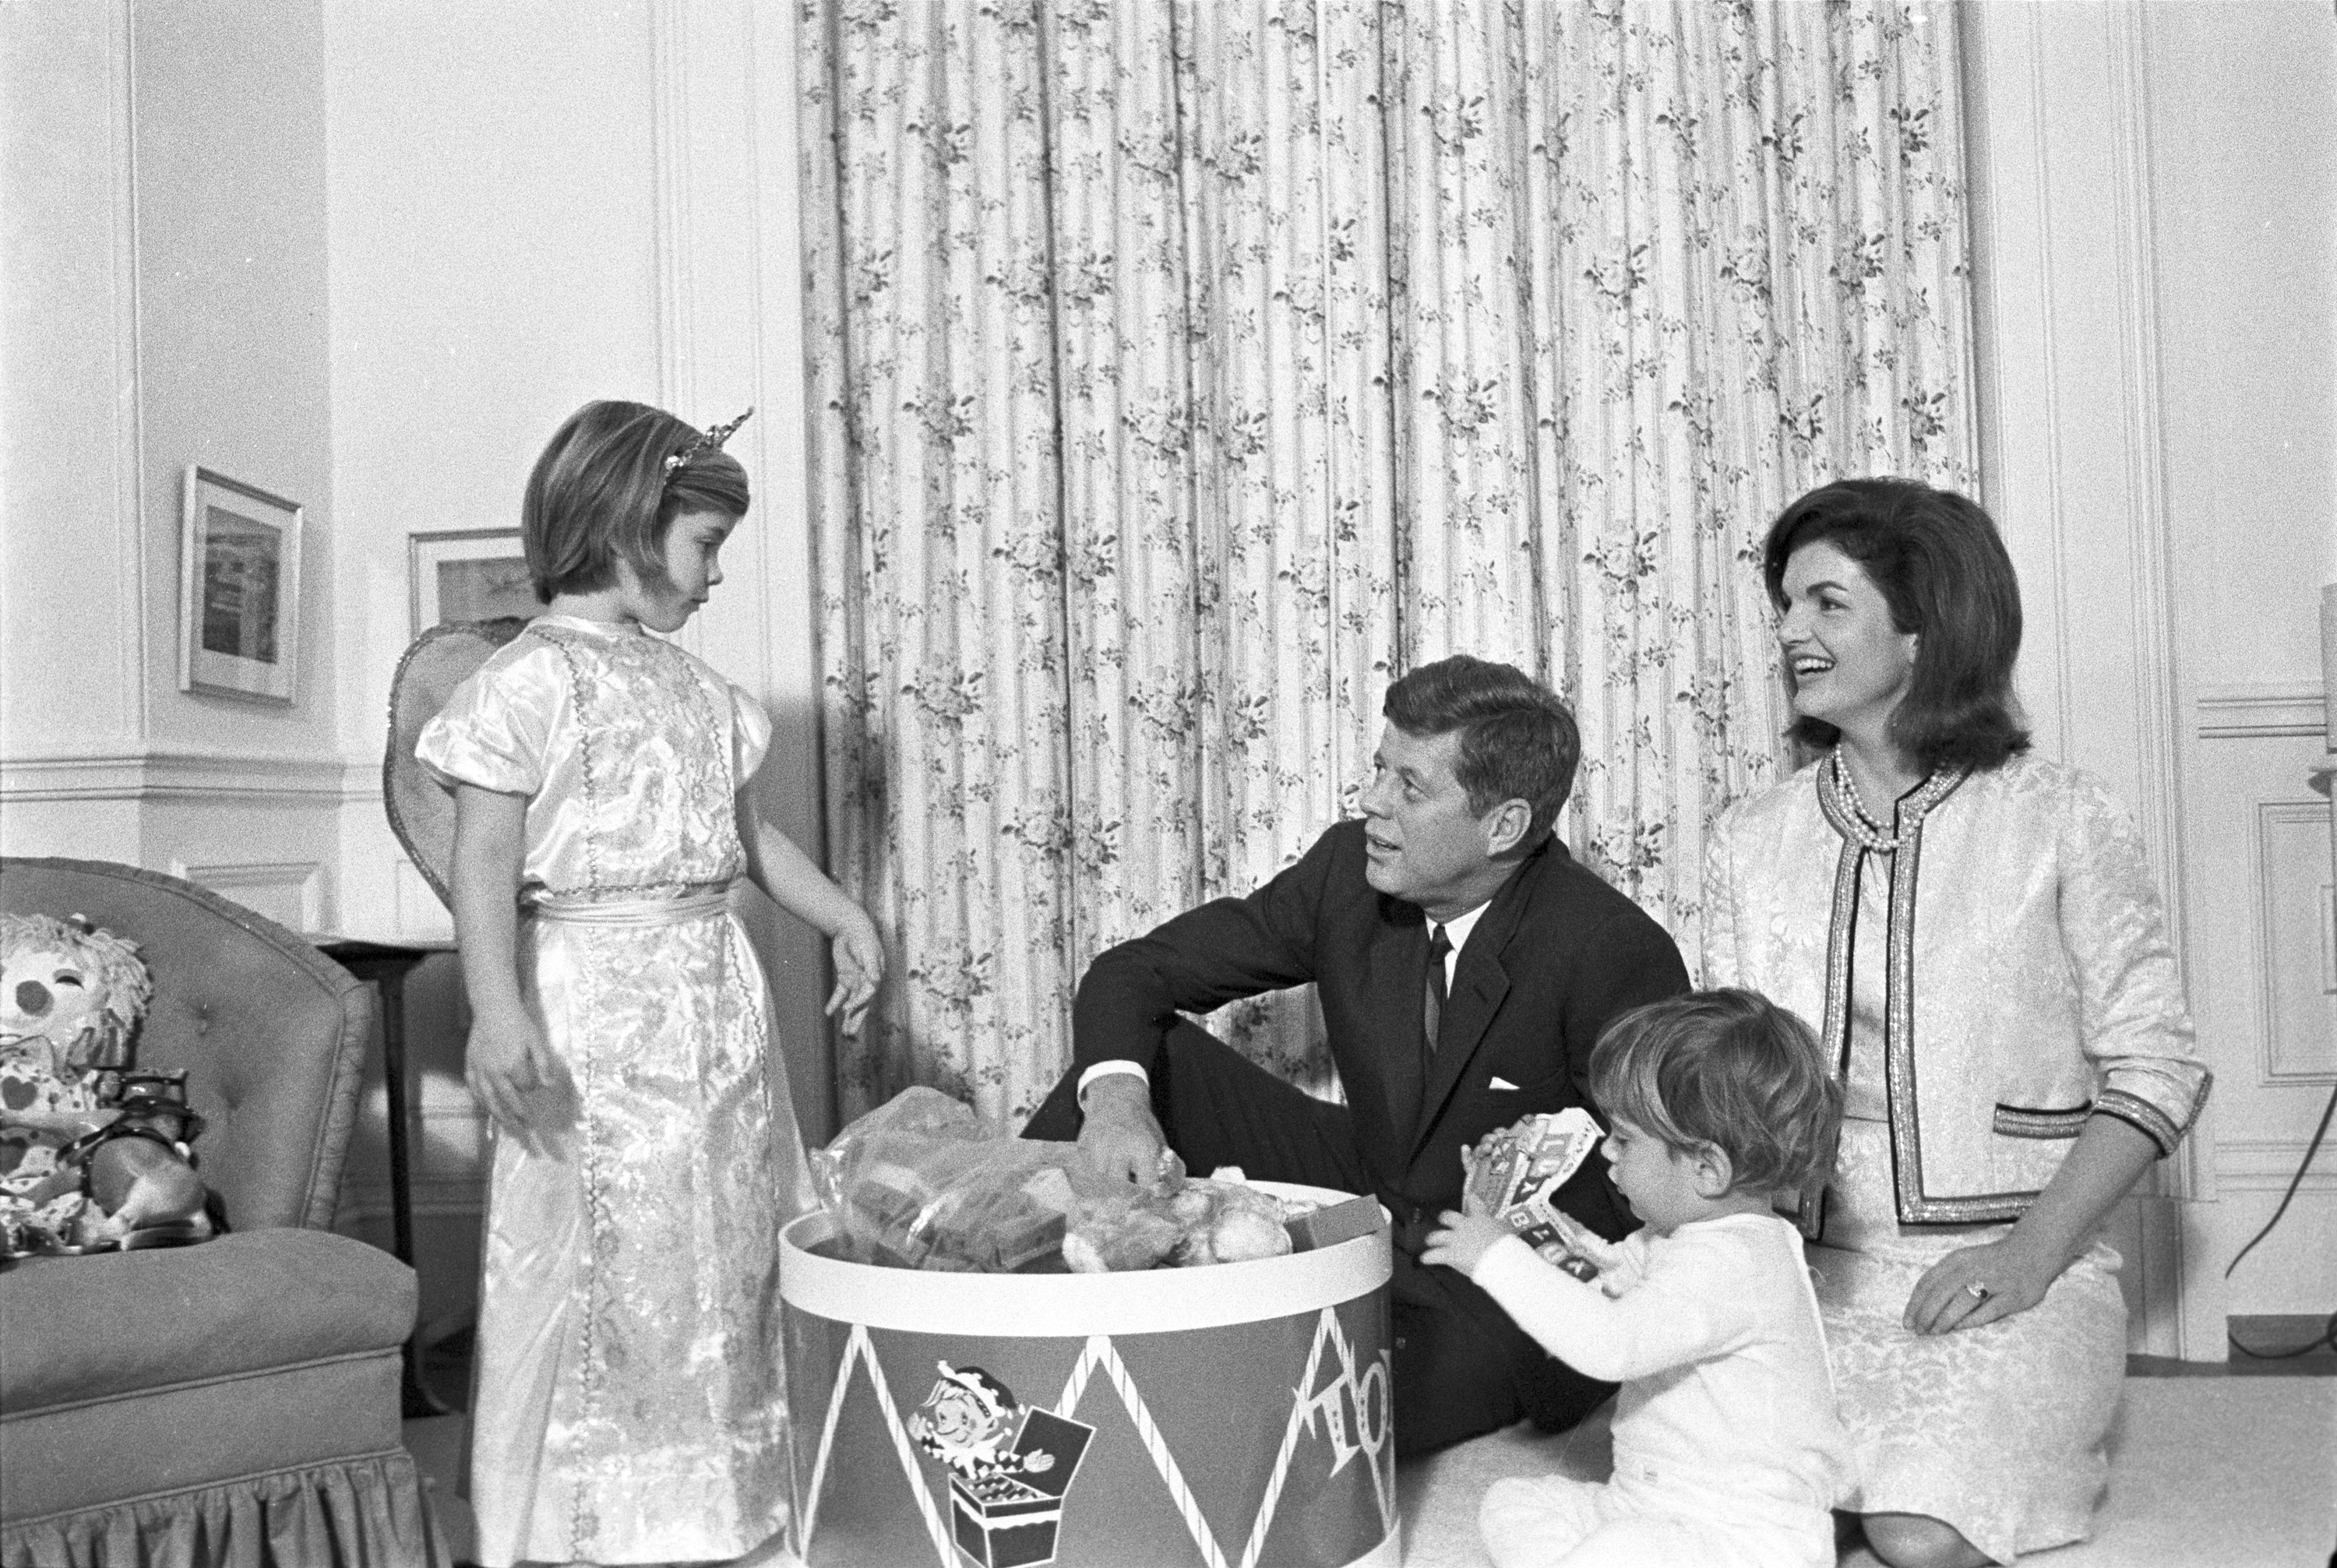 President Kennedy relaxes with the First Family in the White House ...